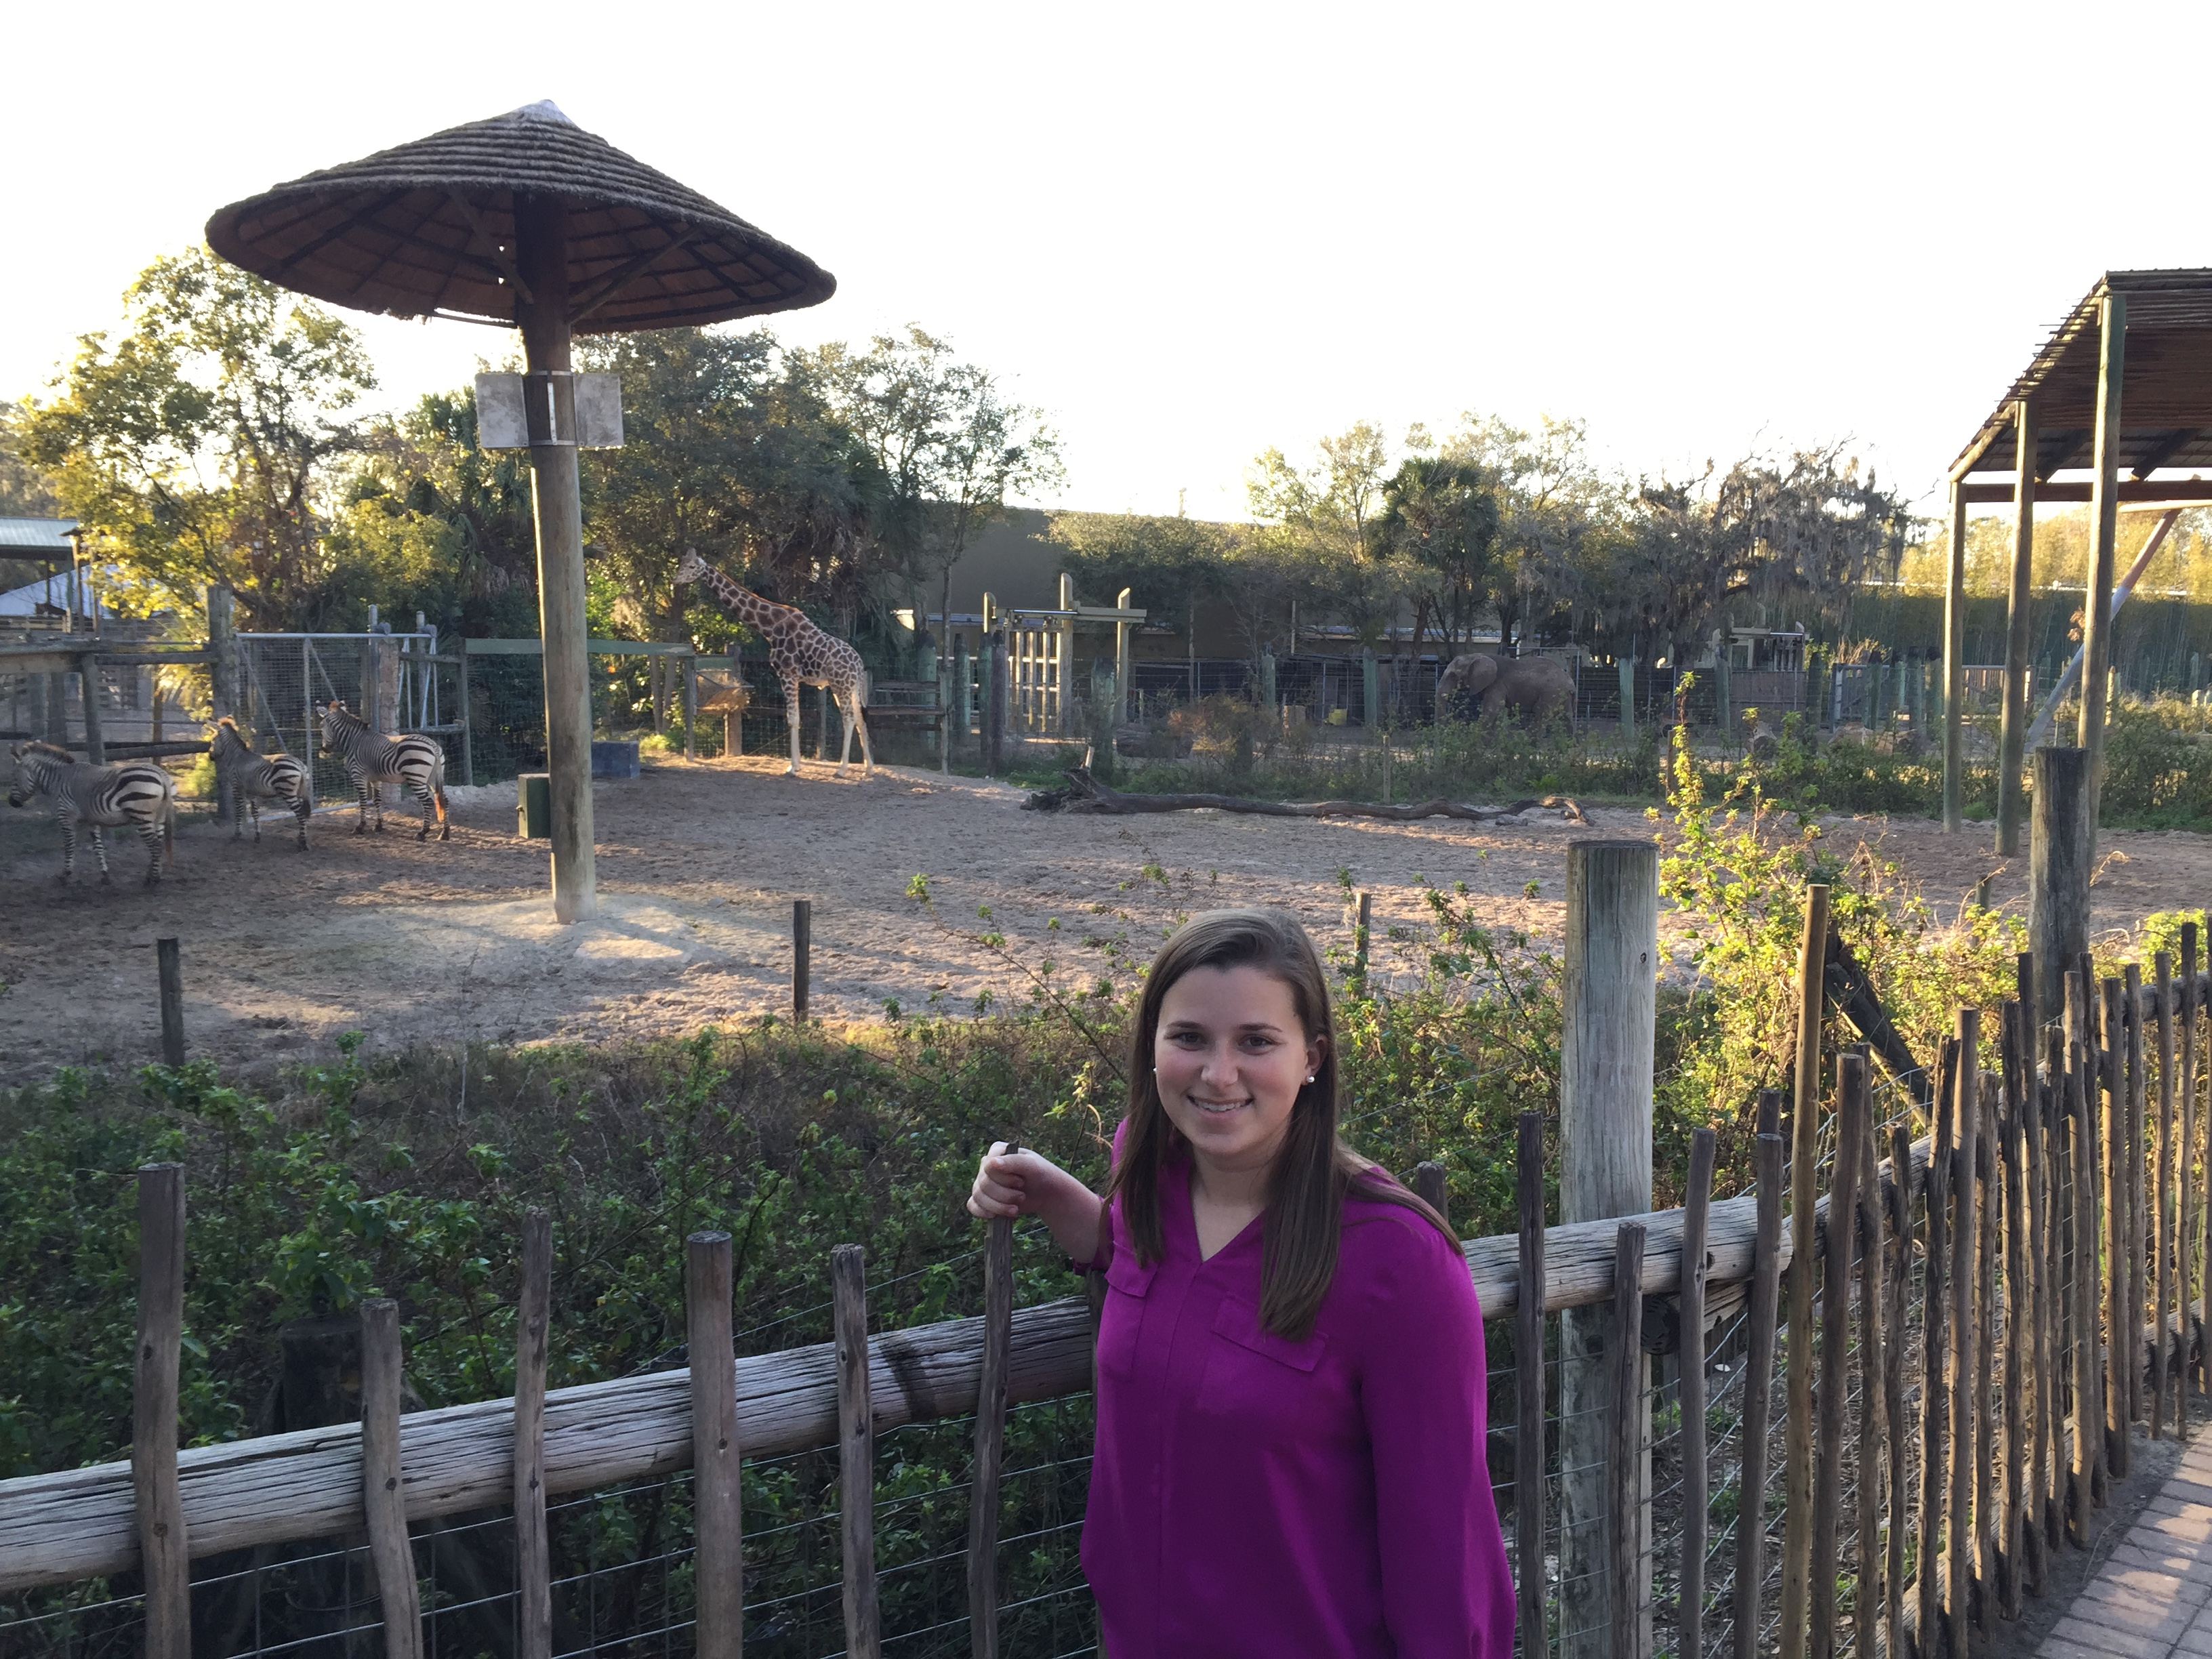 Nicole Morrison, Events Coordinator, at the Lowry Park Zoo